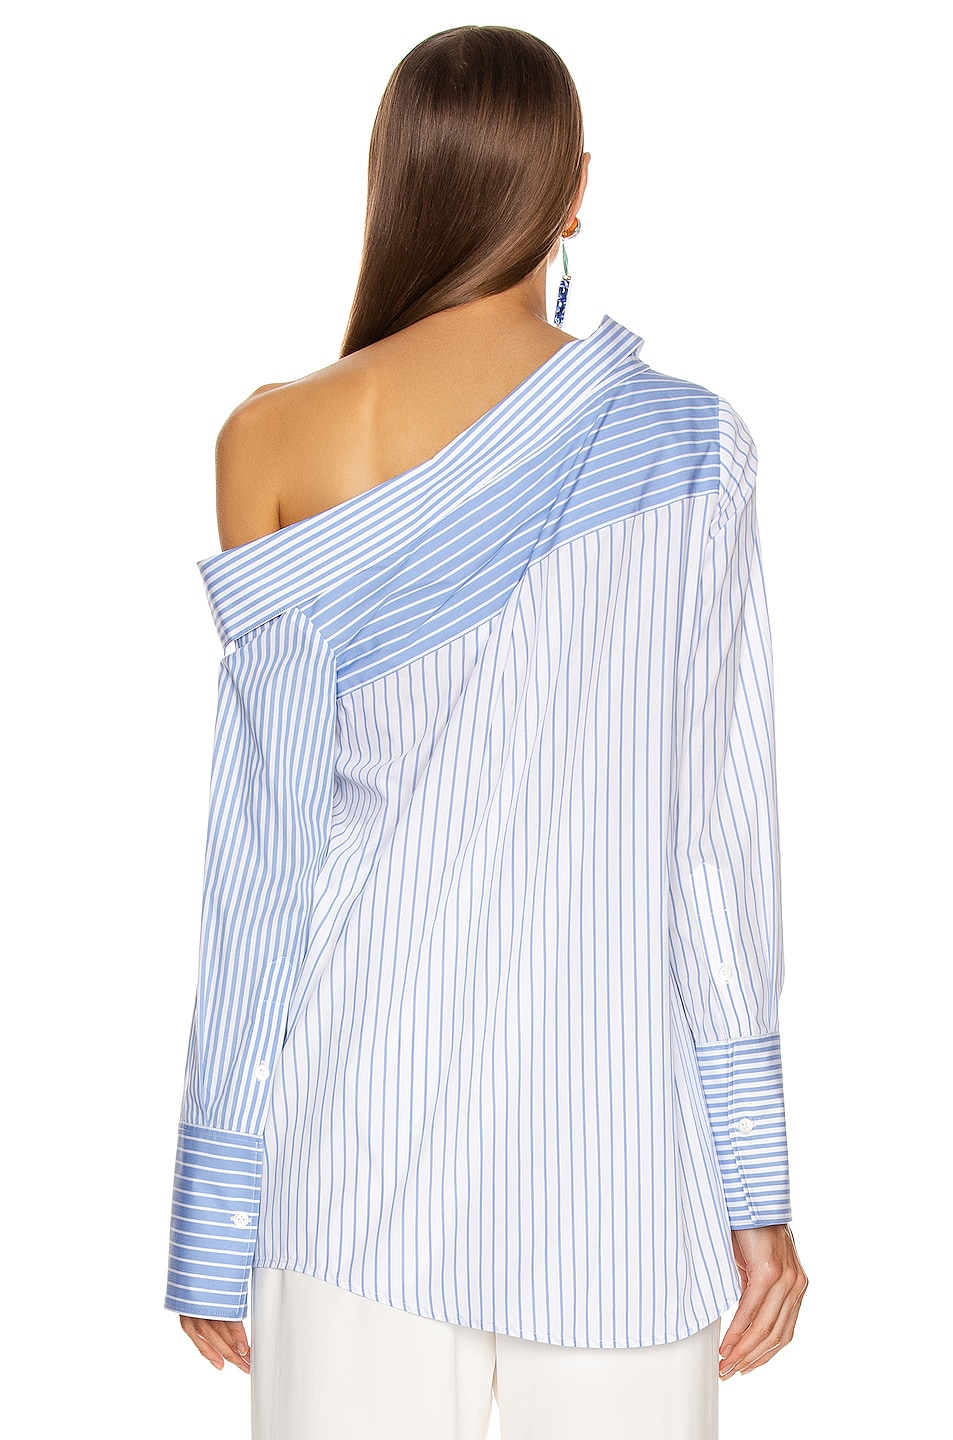 Image 4 of Monse Asymmetrical Flap Collar Shirt in Sky Blue & White